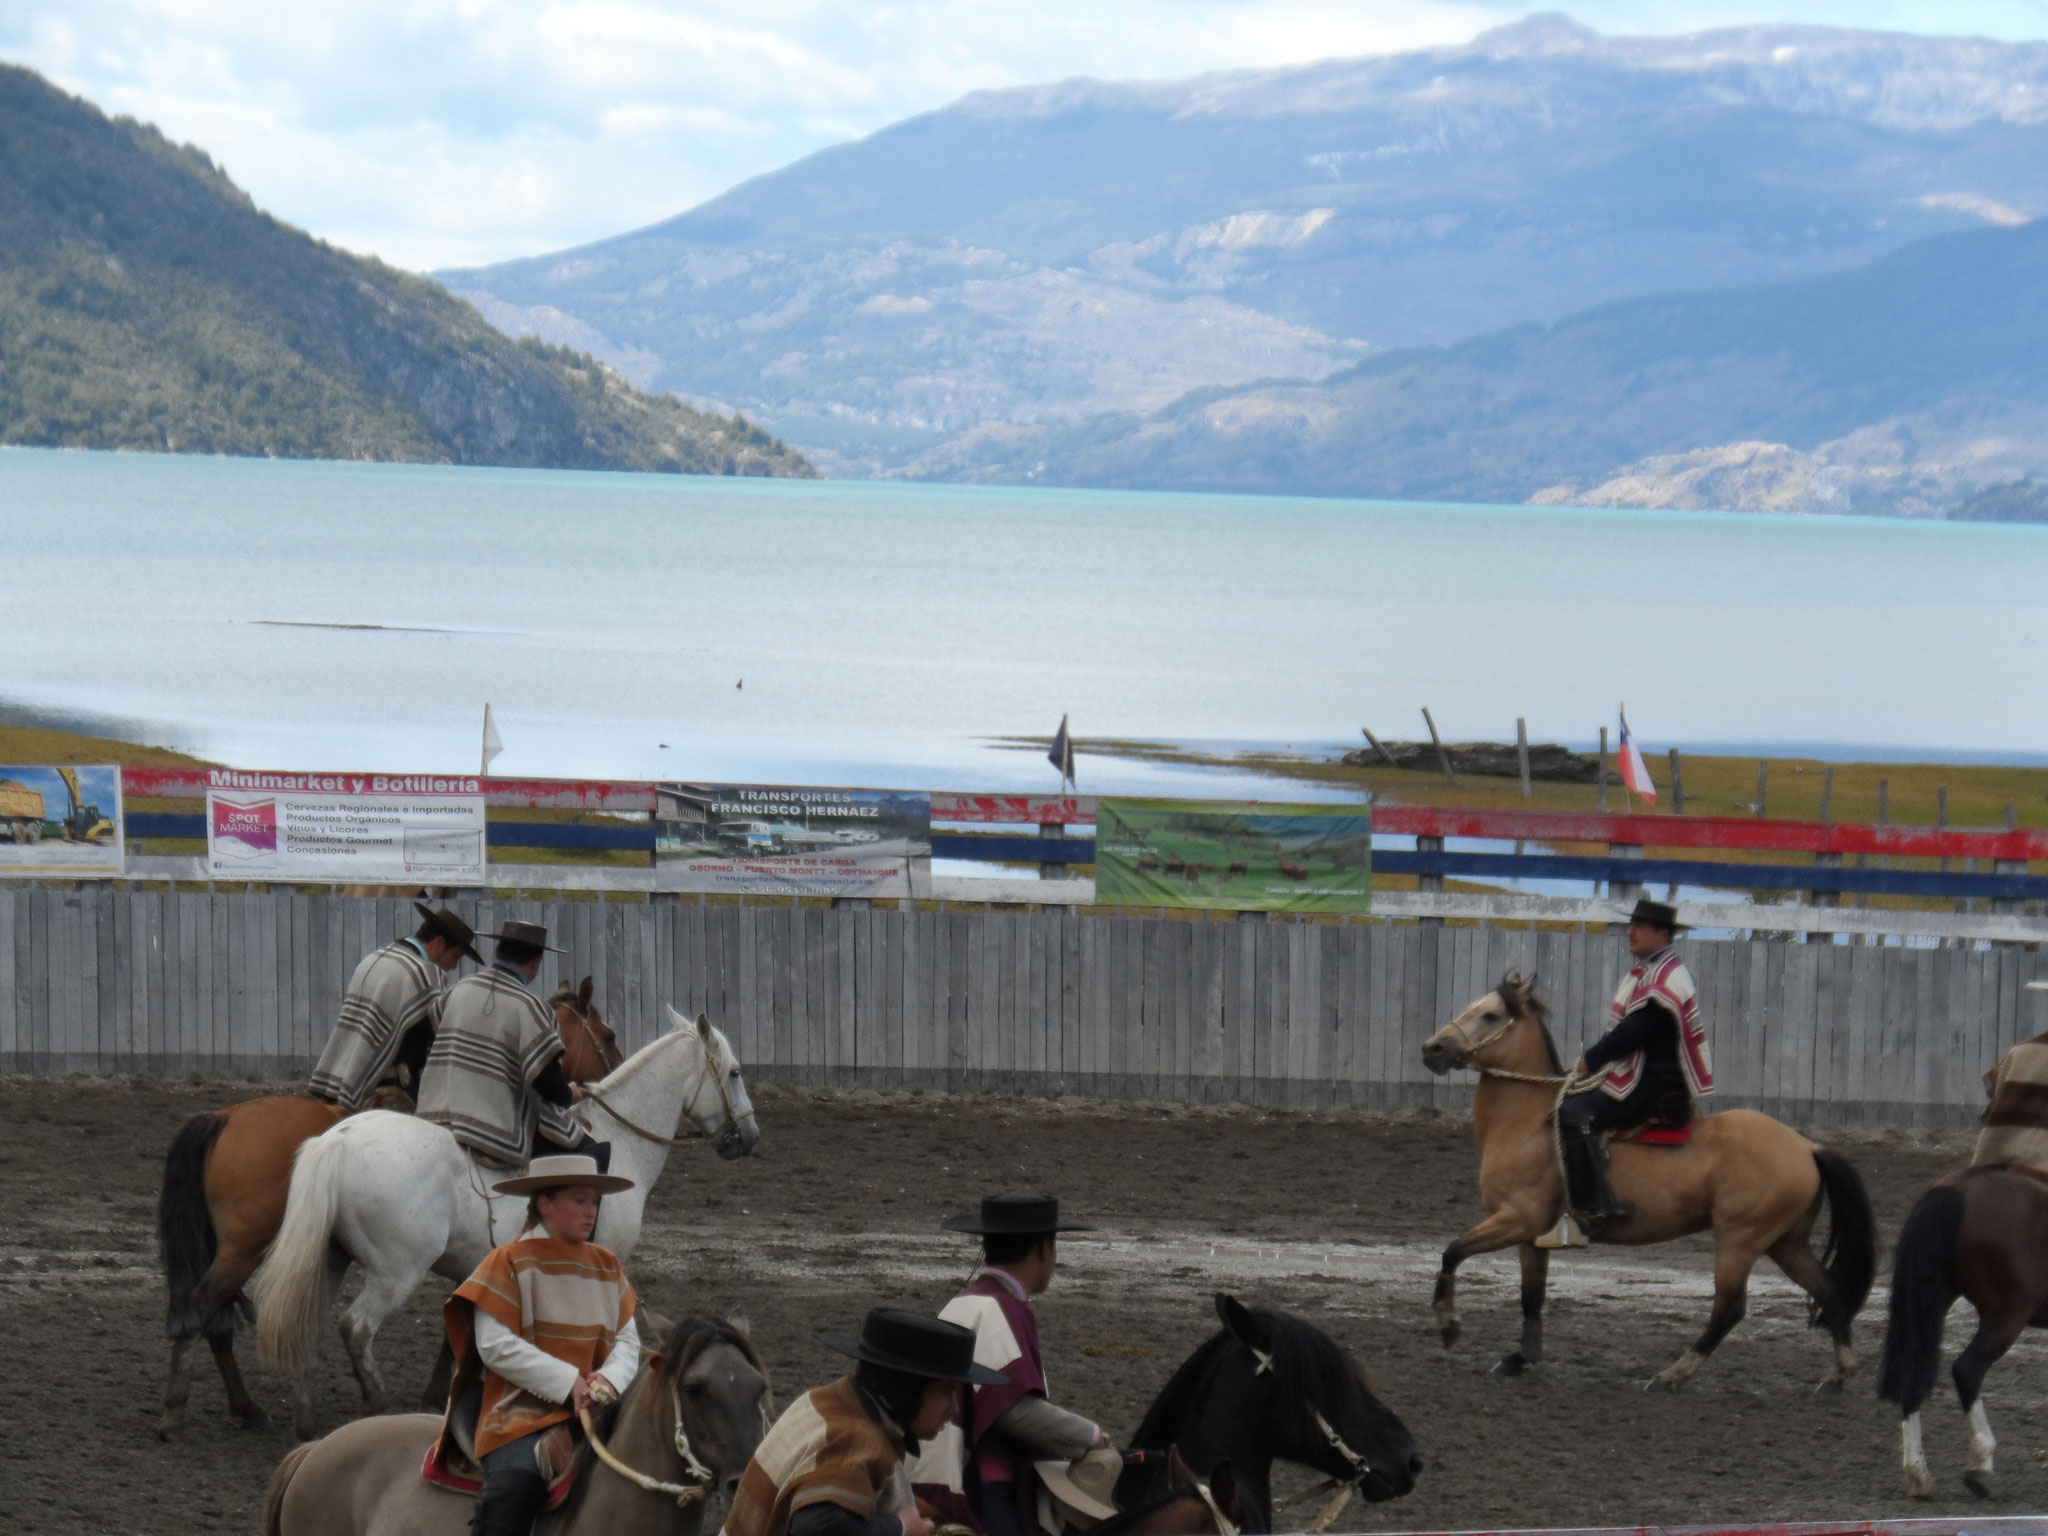 Le rodeo, sport national